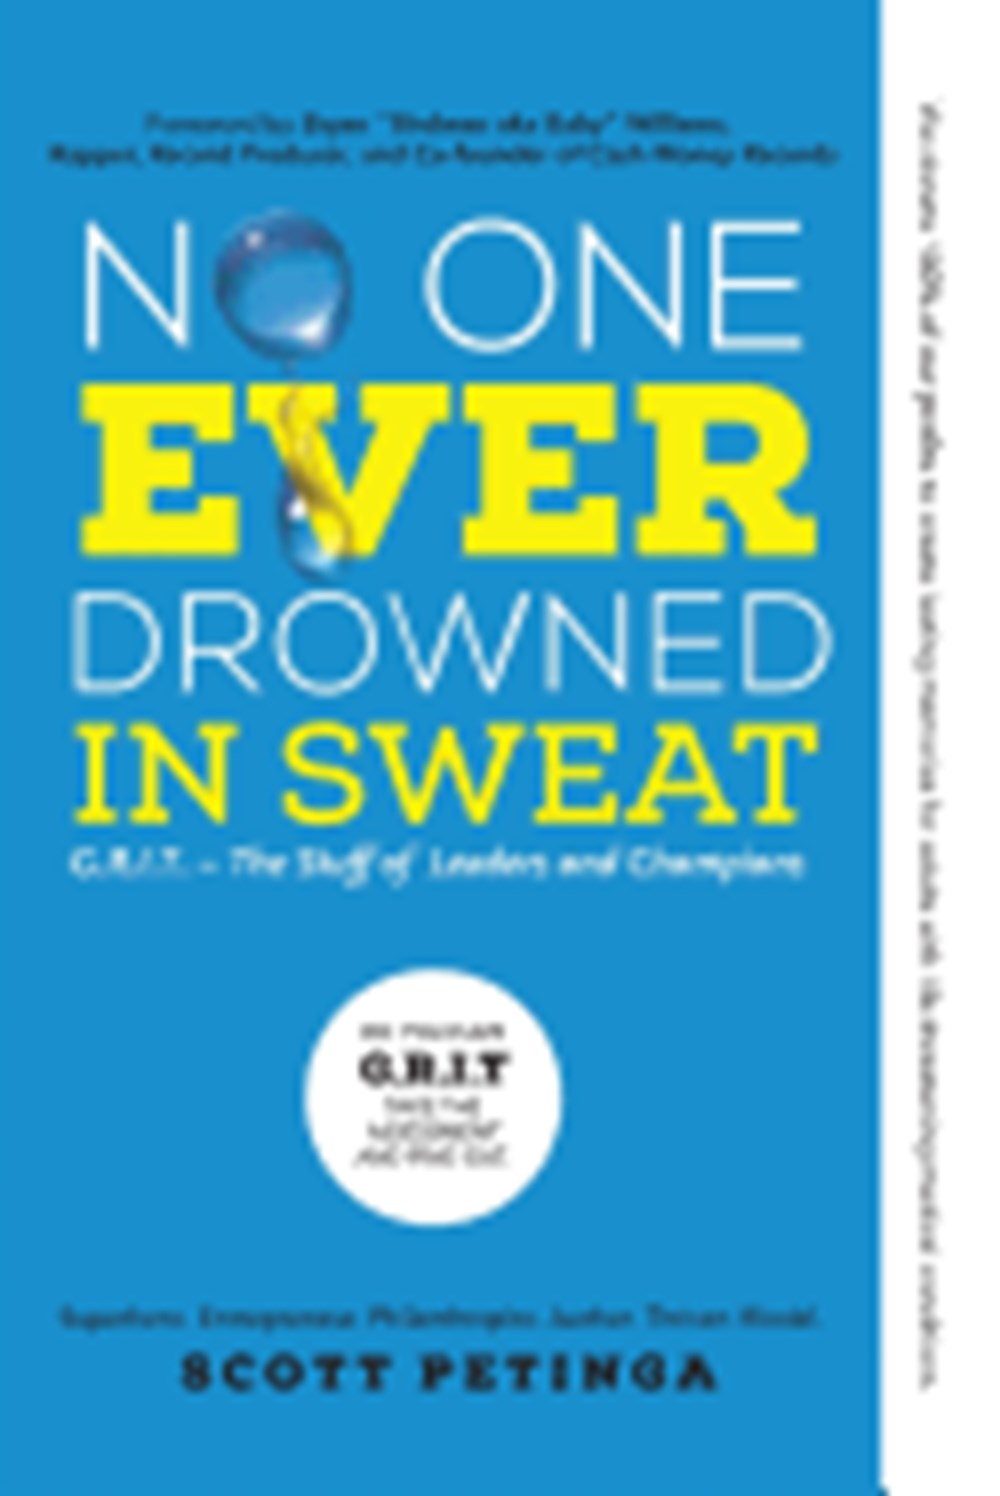 No One Ever Drowned in Sweat G.R.I.T. - The Stuff of Leaders and Champions